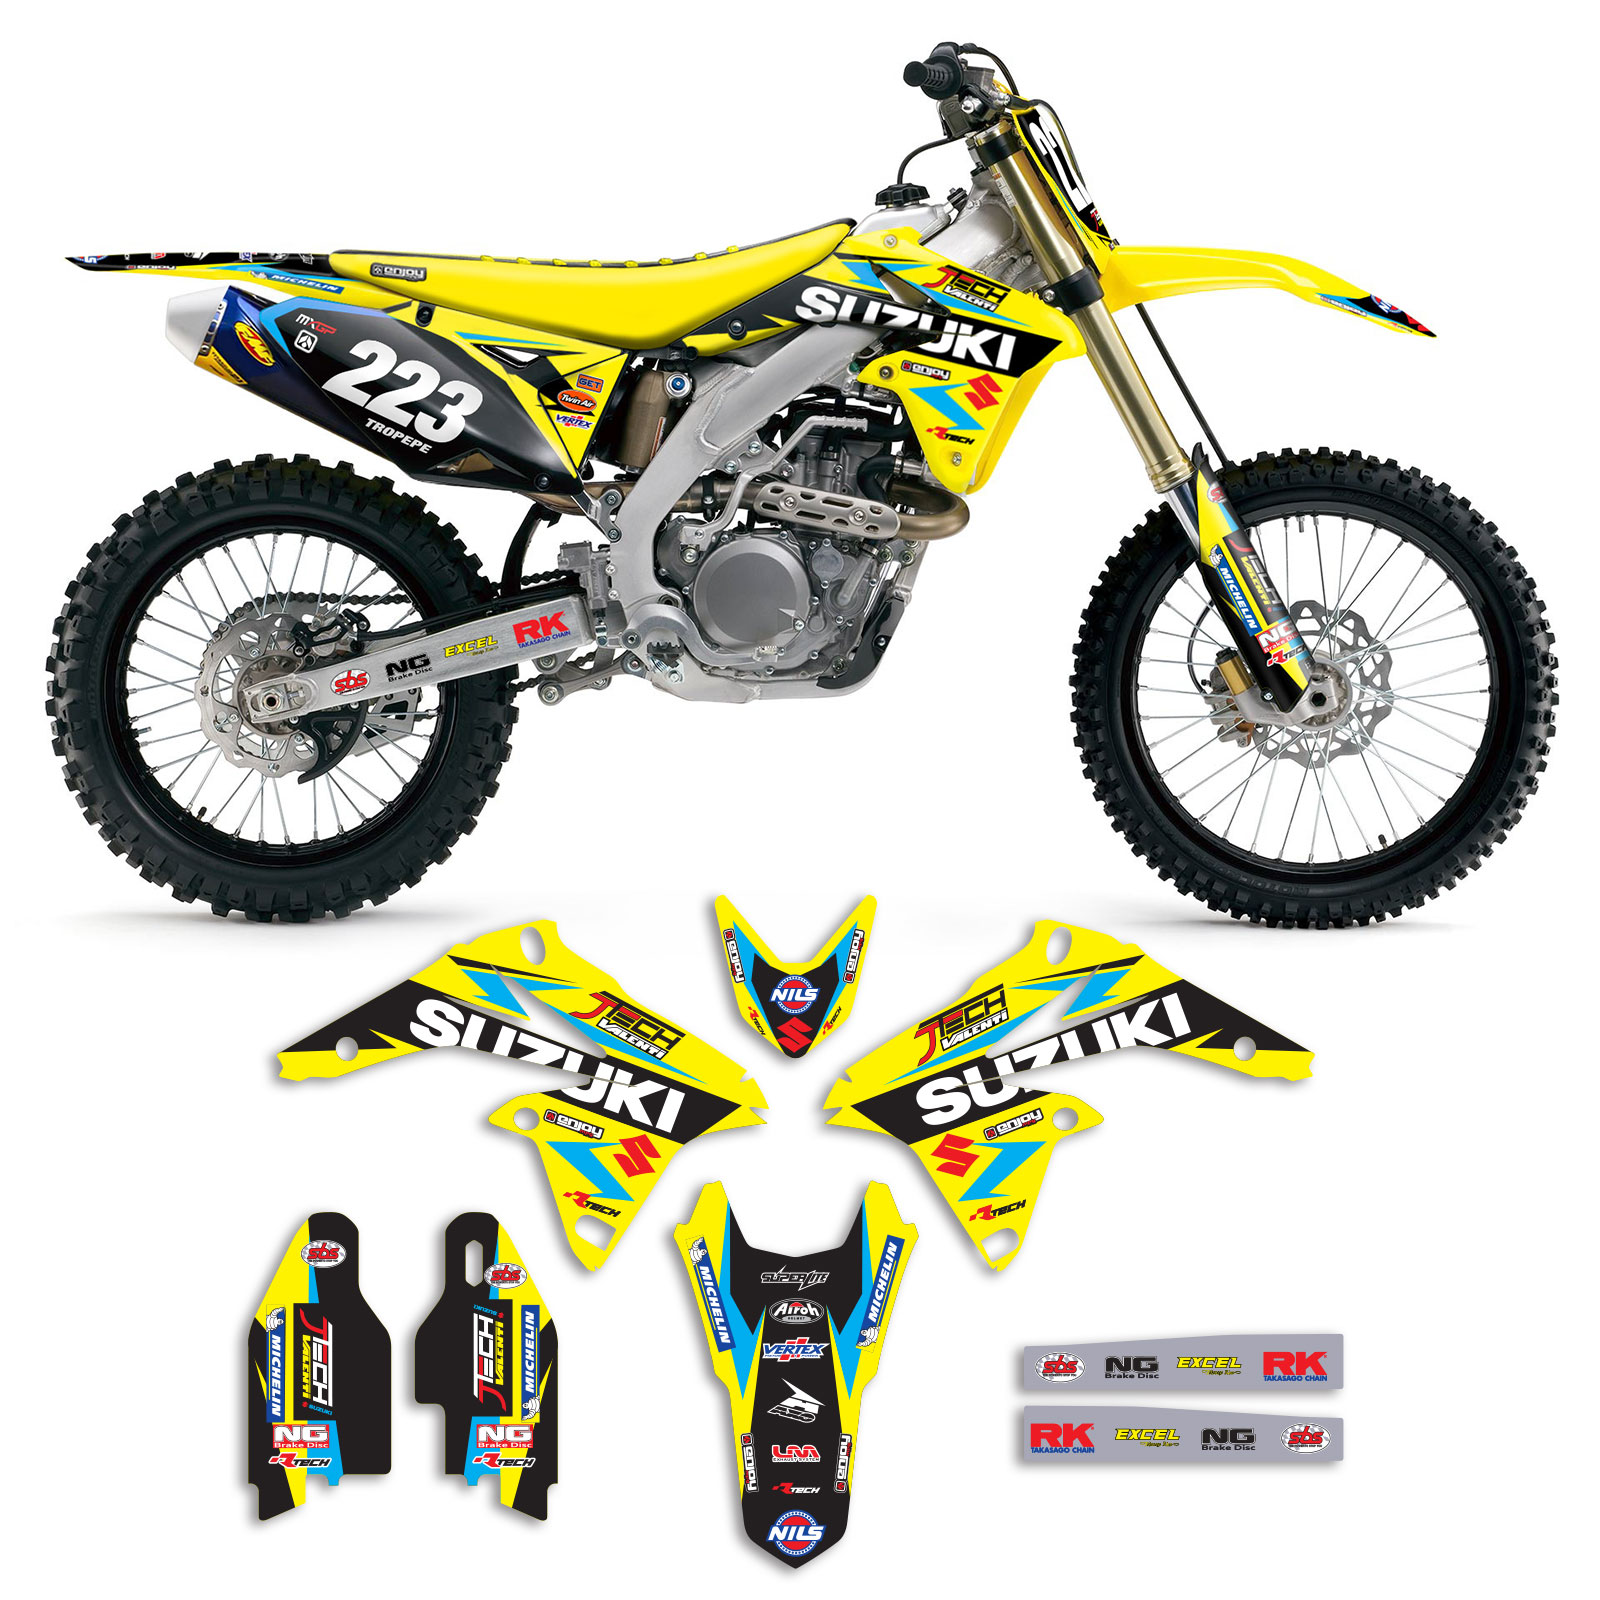 2010 2017 suzuki rmz 250 team jtech motocross graphics kit. Black Bedroom Furniture Sets. Home Design Ideas